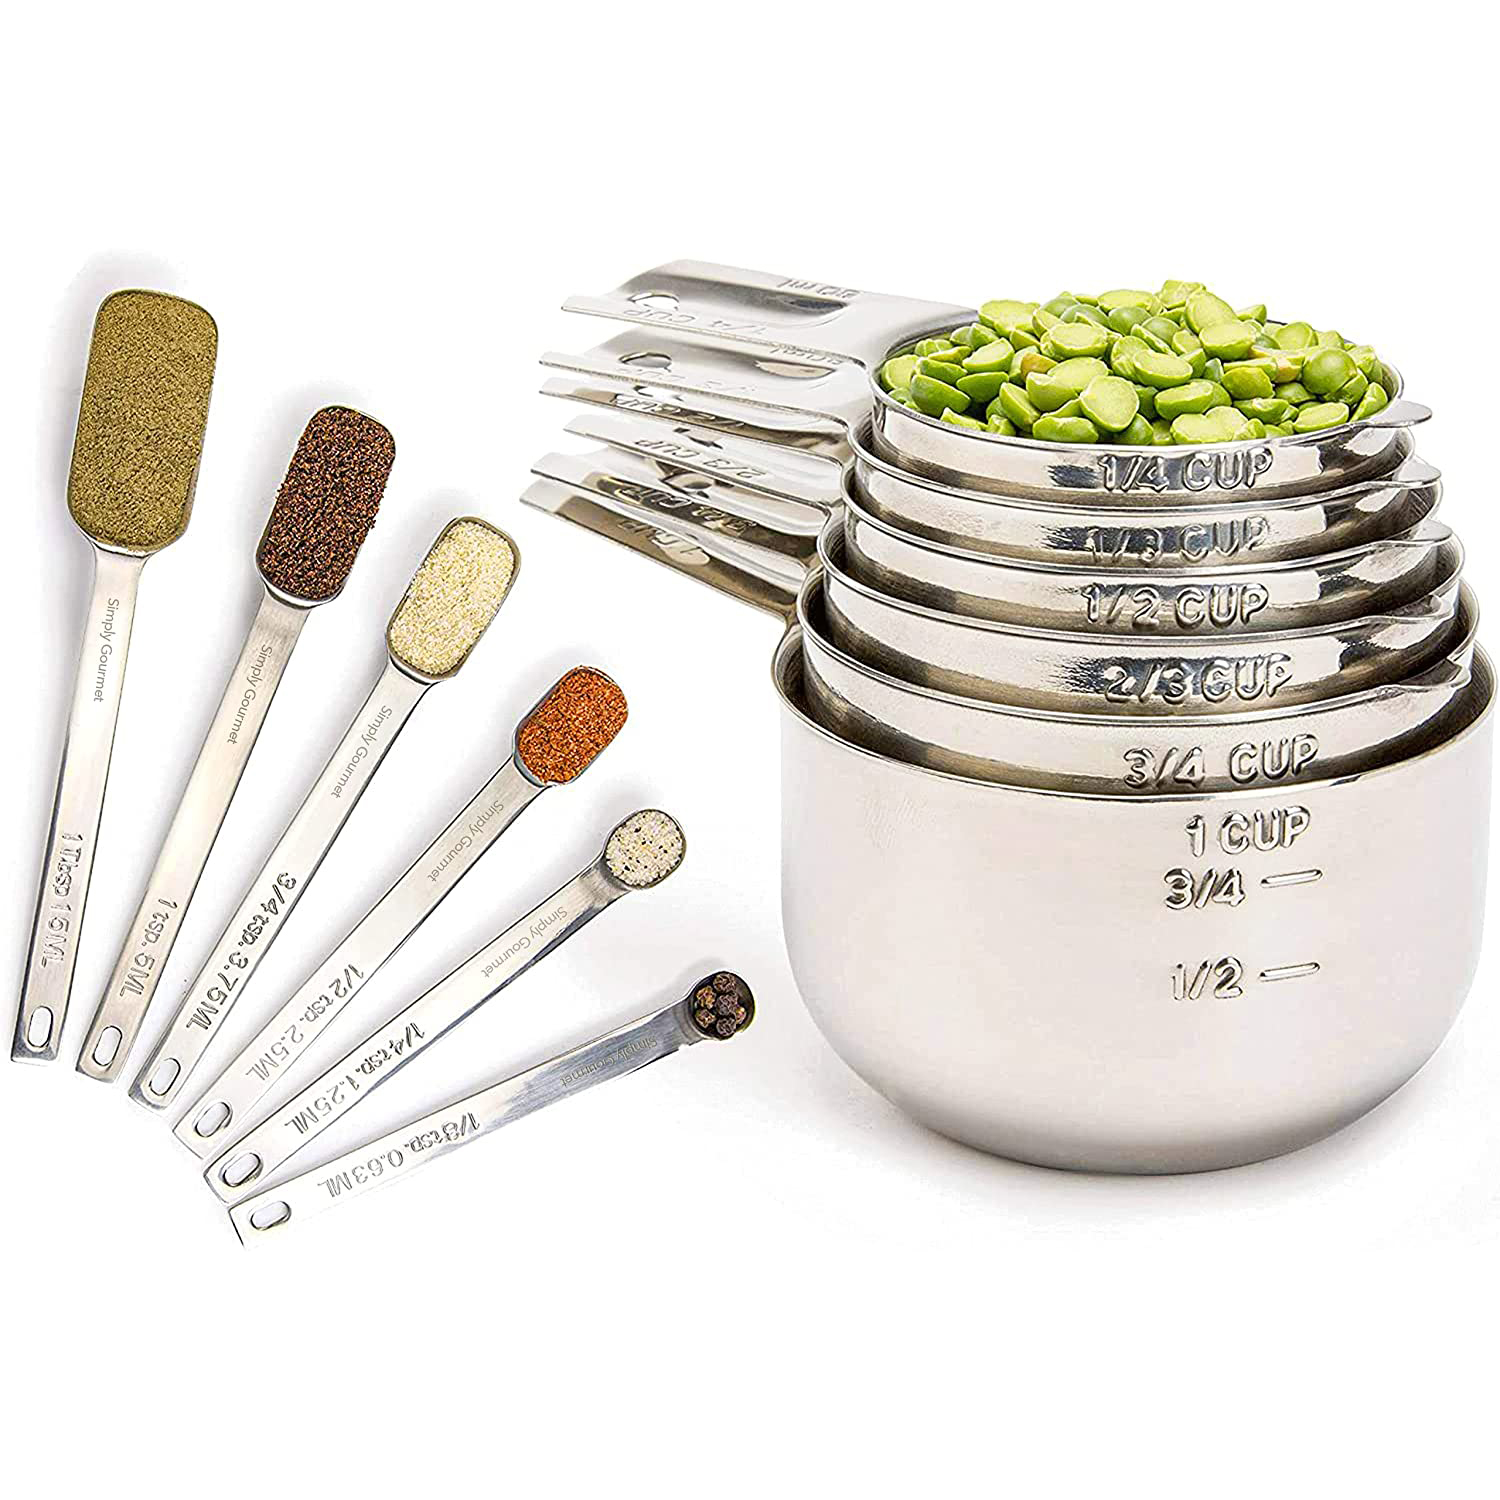 Simply Gourmet Measuring Cups and Spoons Set of 12 Stainless Steel for Cooking & Baking